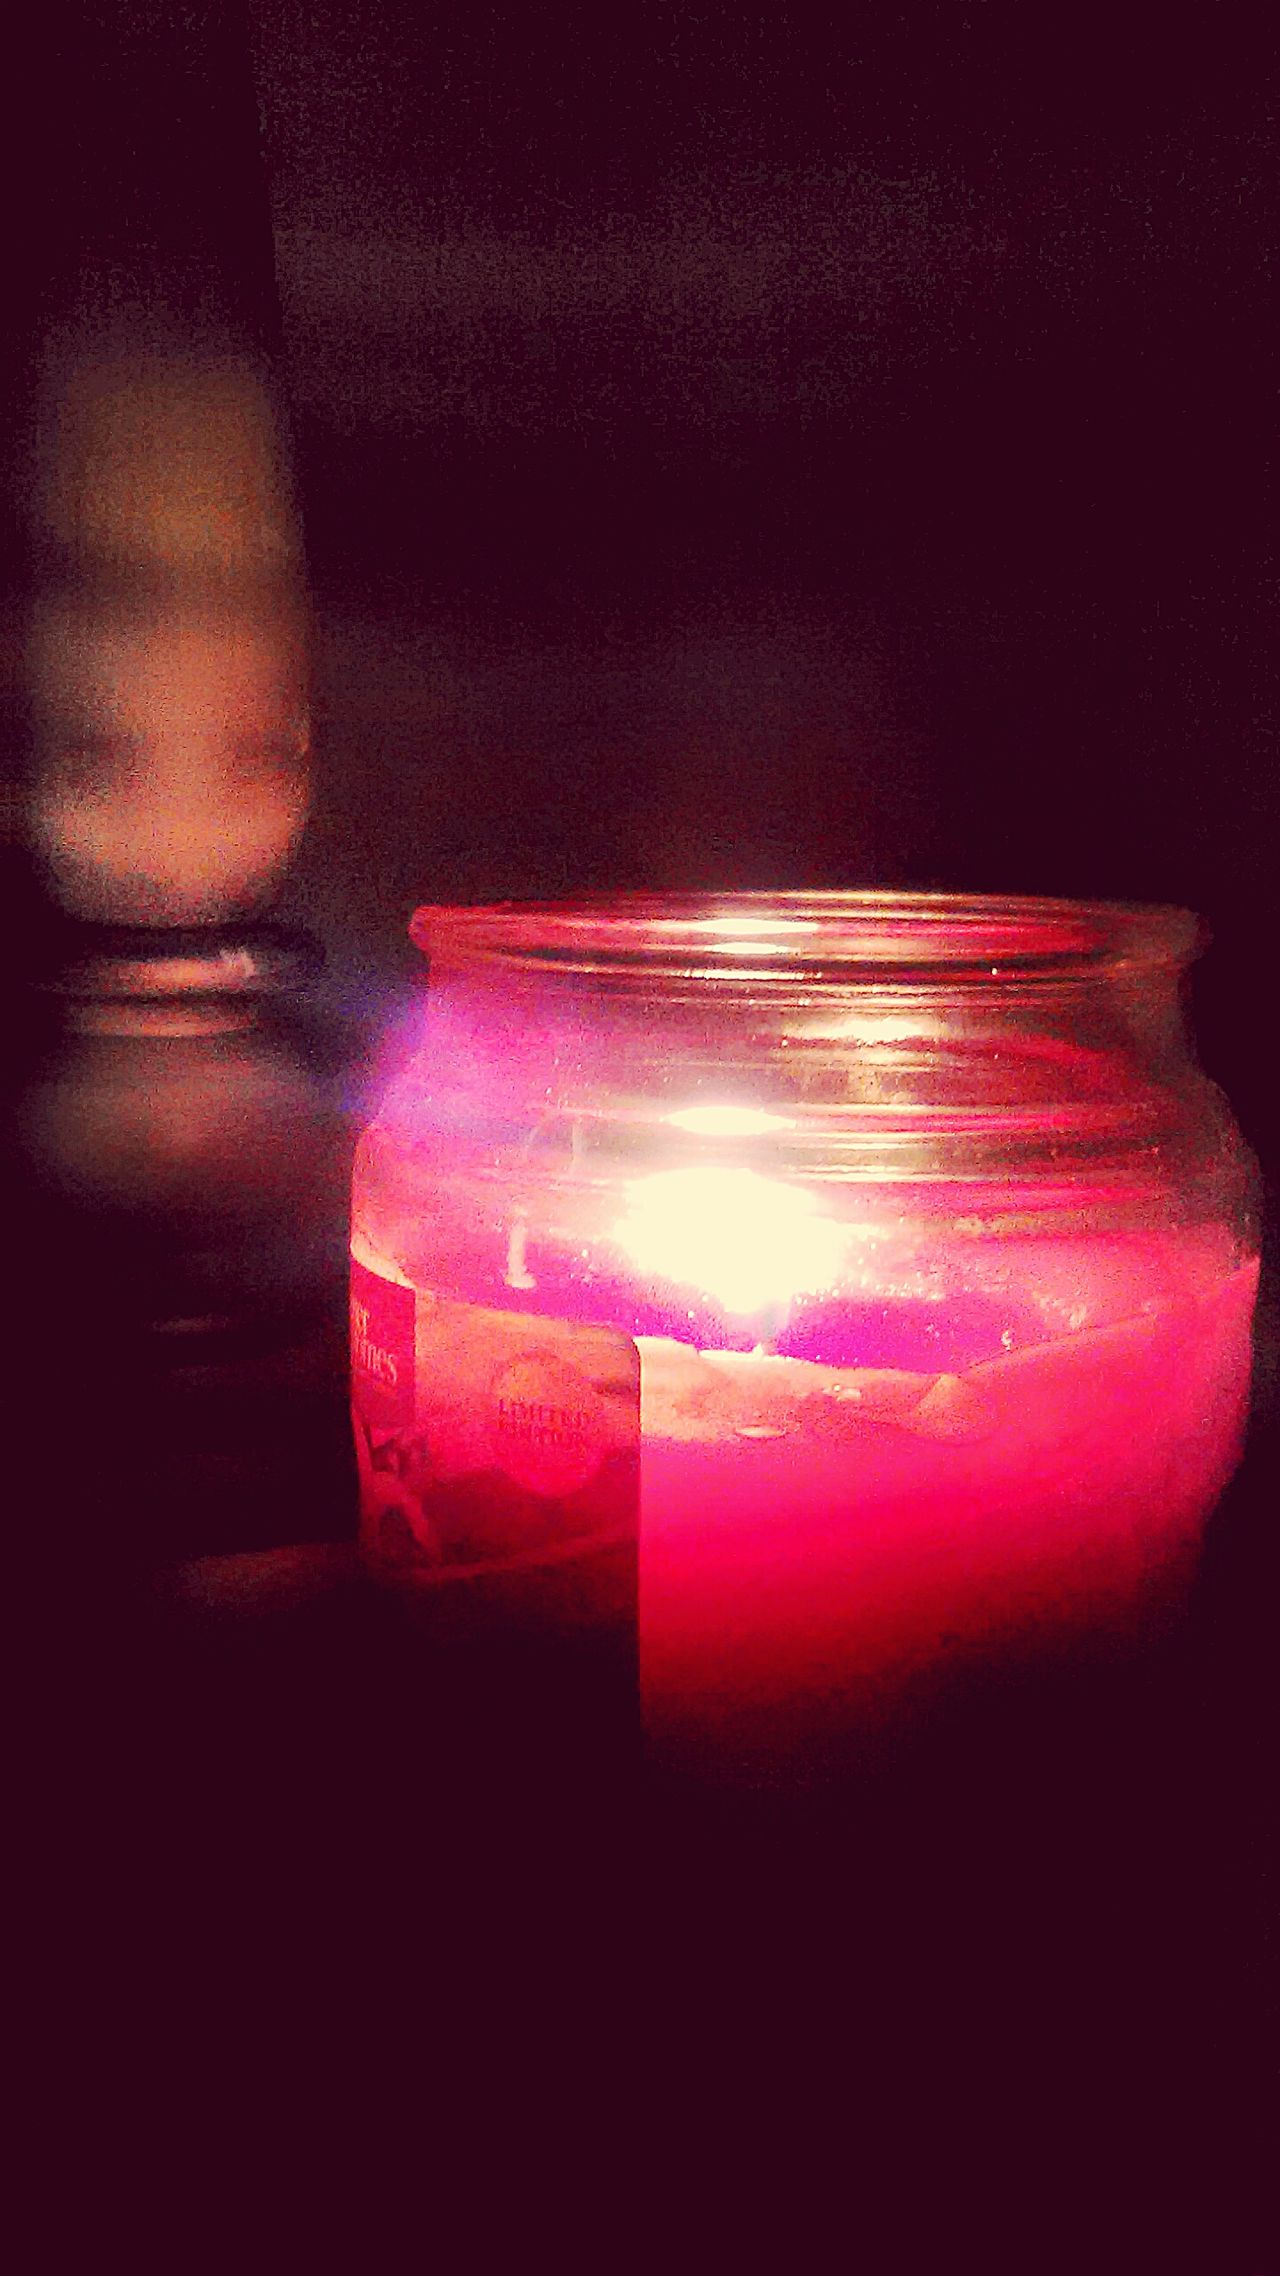 Cranberry Apple Scented Candle Nightphotography Relaxing